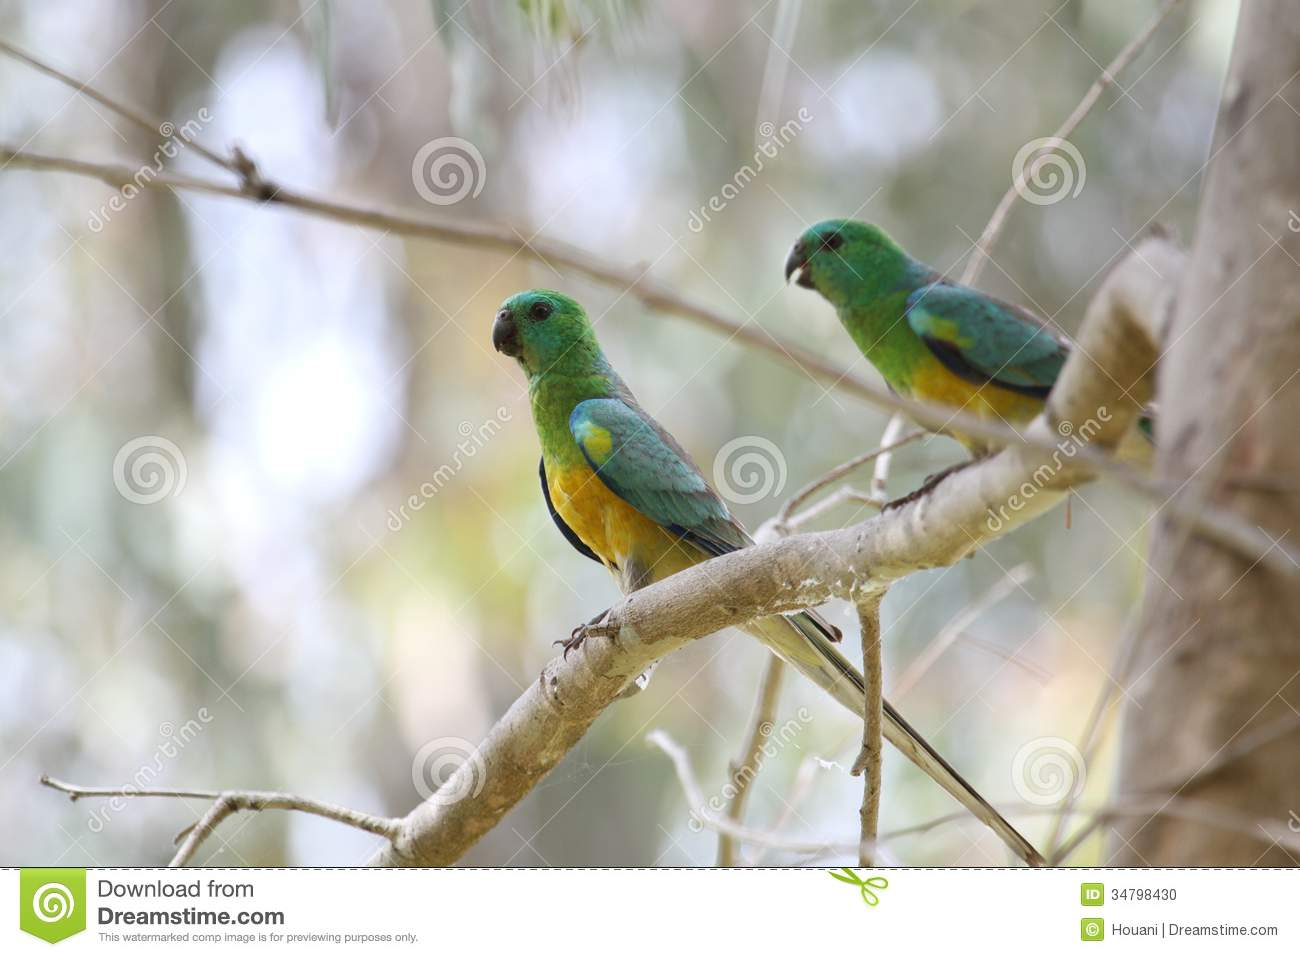 Red-rumped Parrot clipart #15, Download drawings